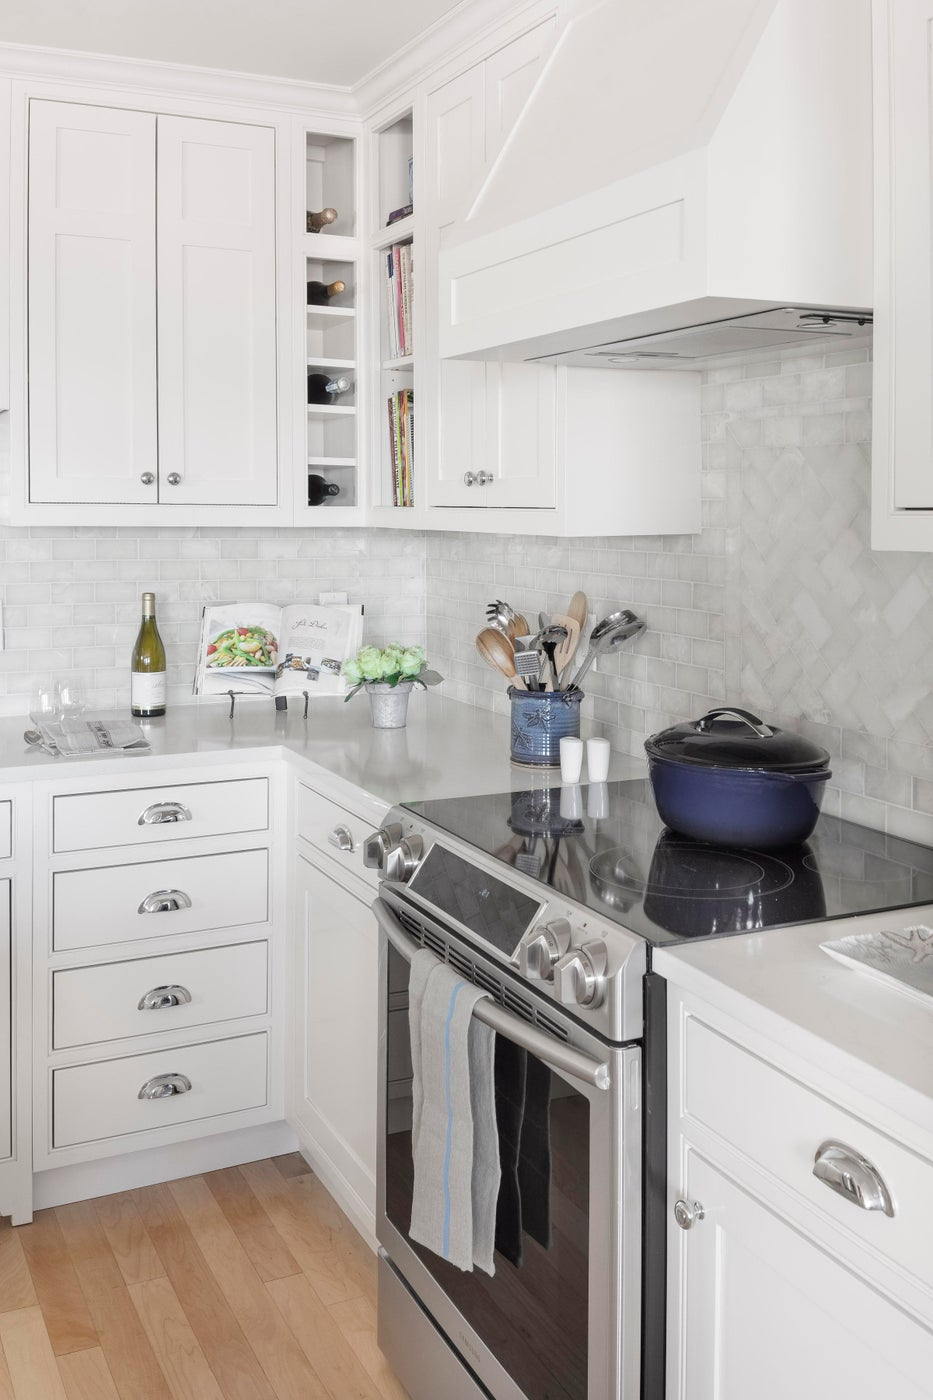 White and bright kitchen for chefs and sommeliers